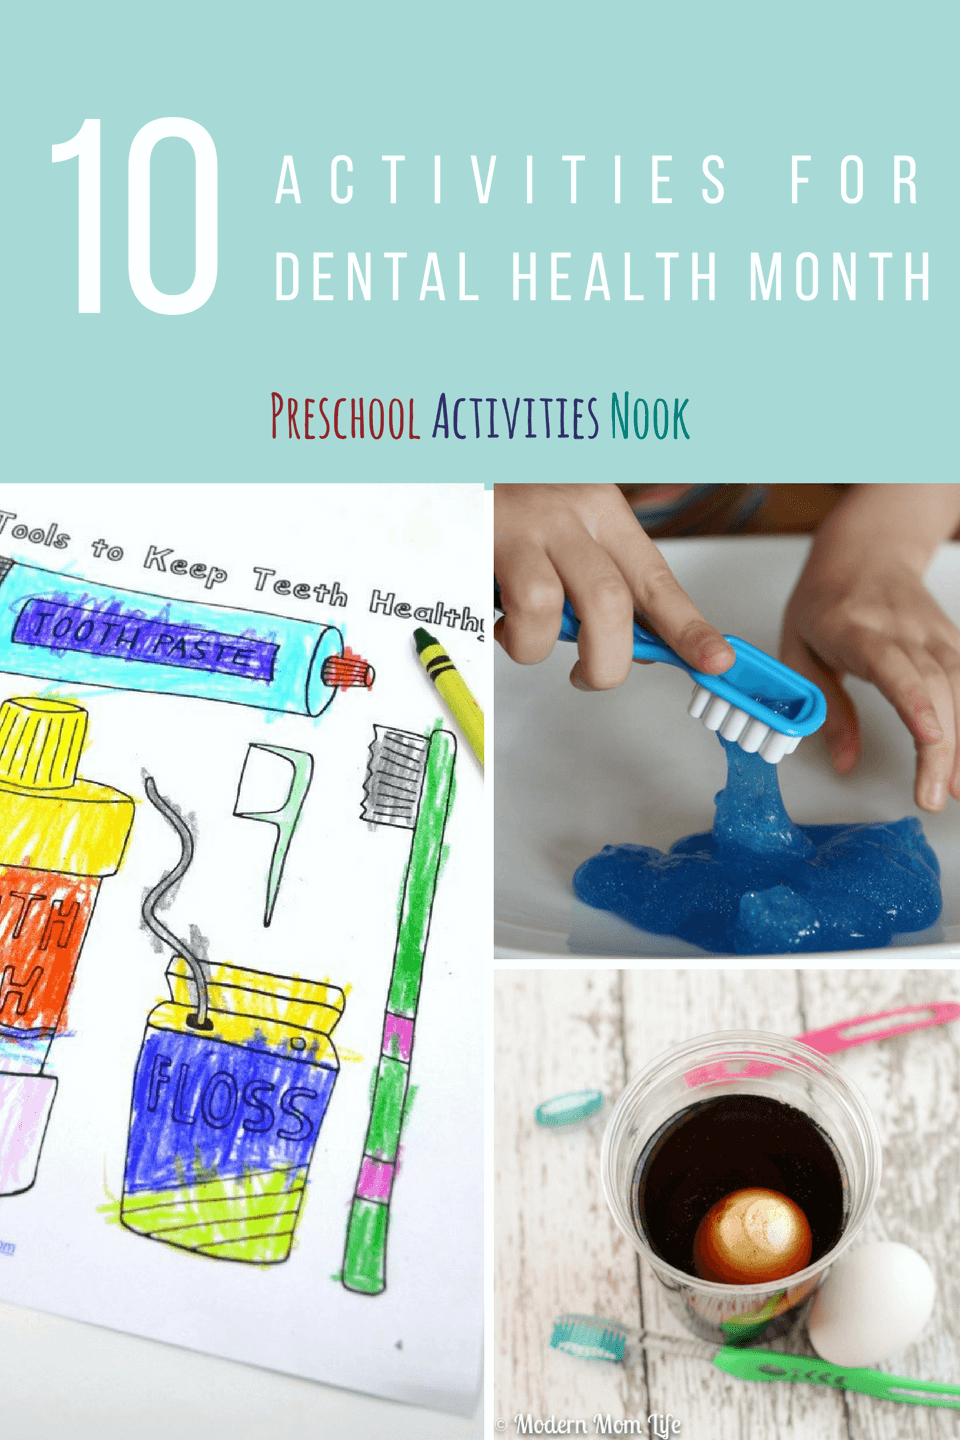 Plan dental health month activities! These are great for brushing teeth lessons for preschoolers and fine motor tooth themed work.